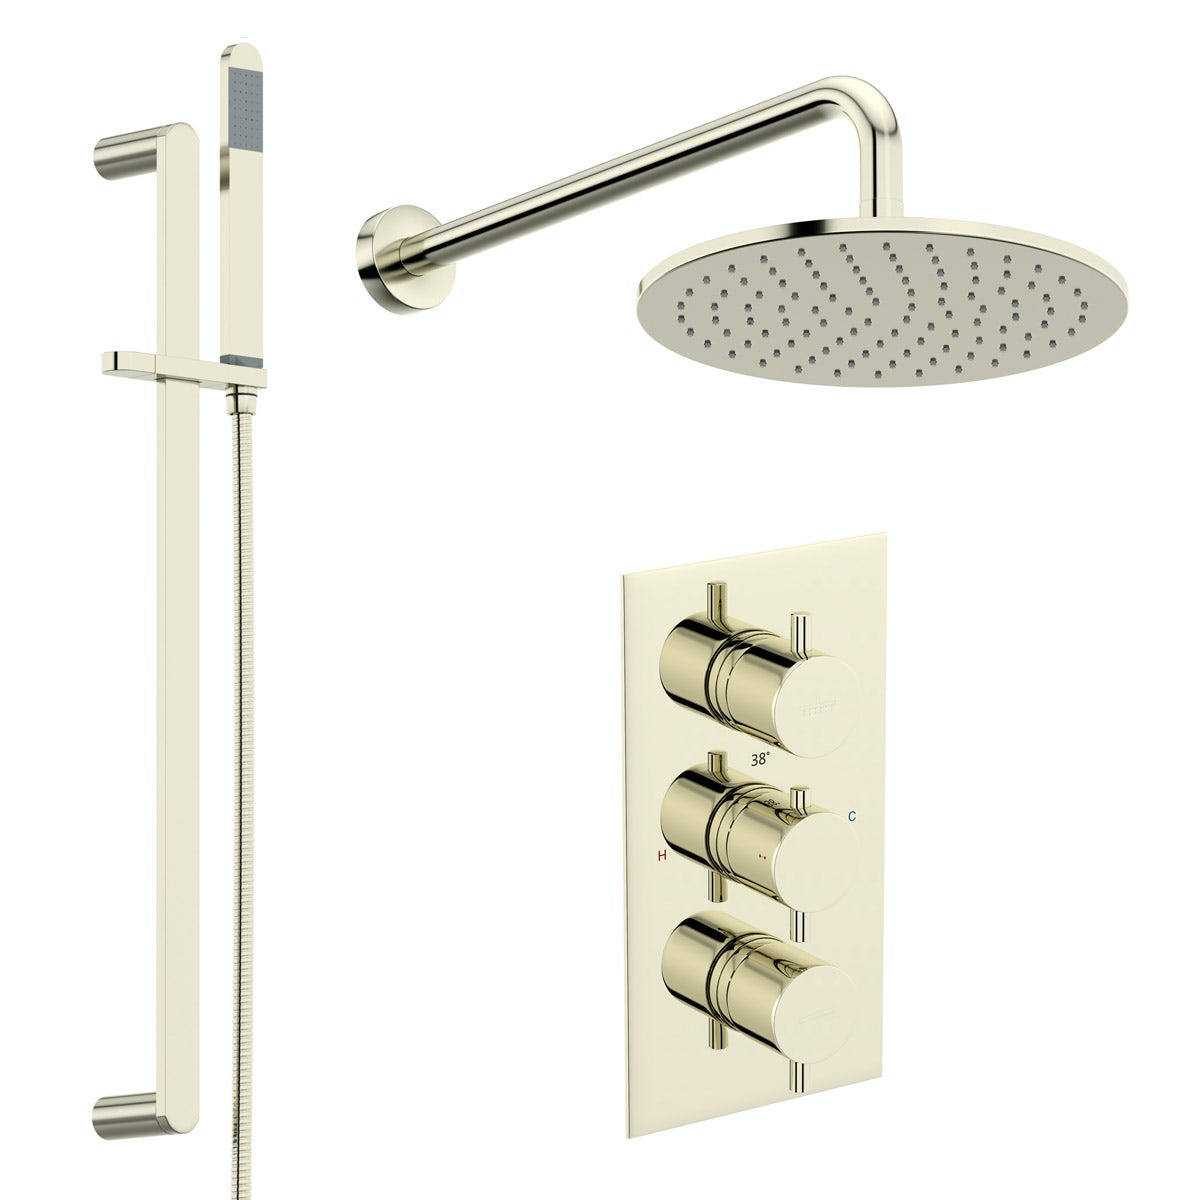 Mode Spencer round gold triple valve shower set